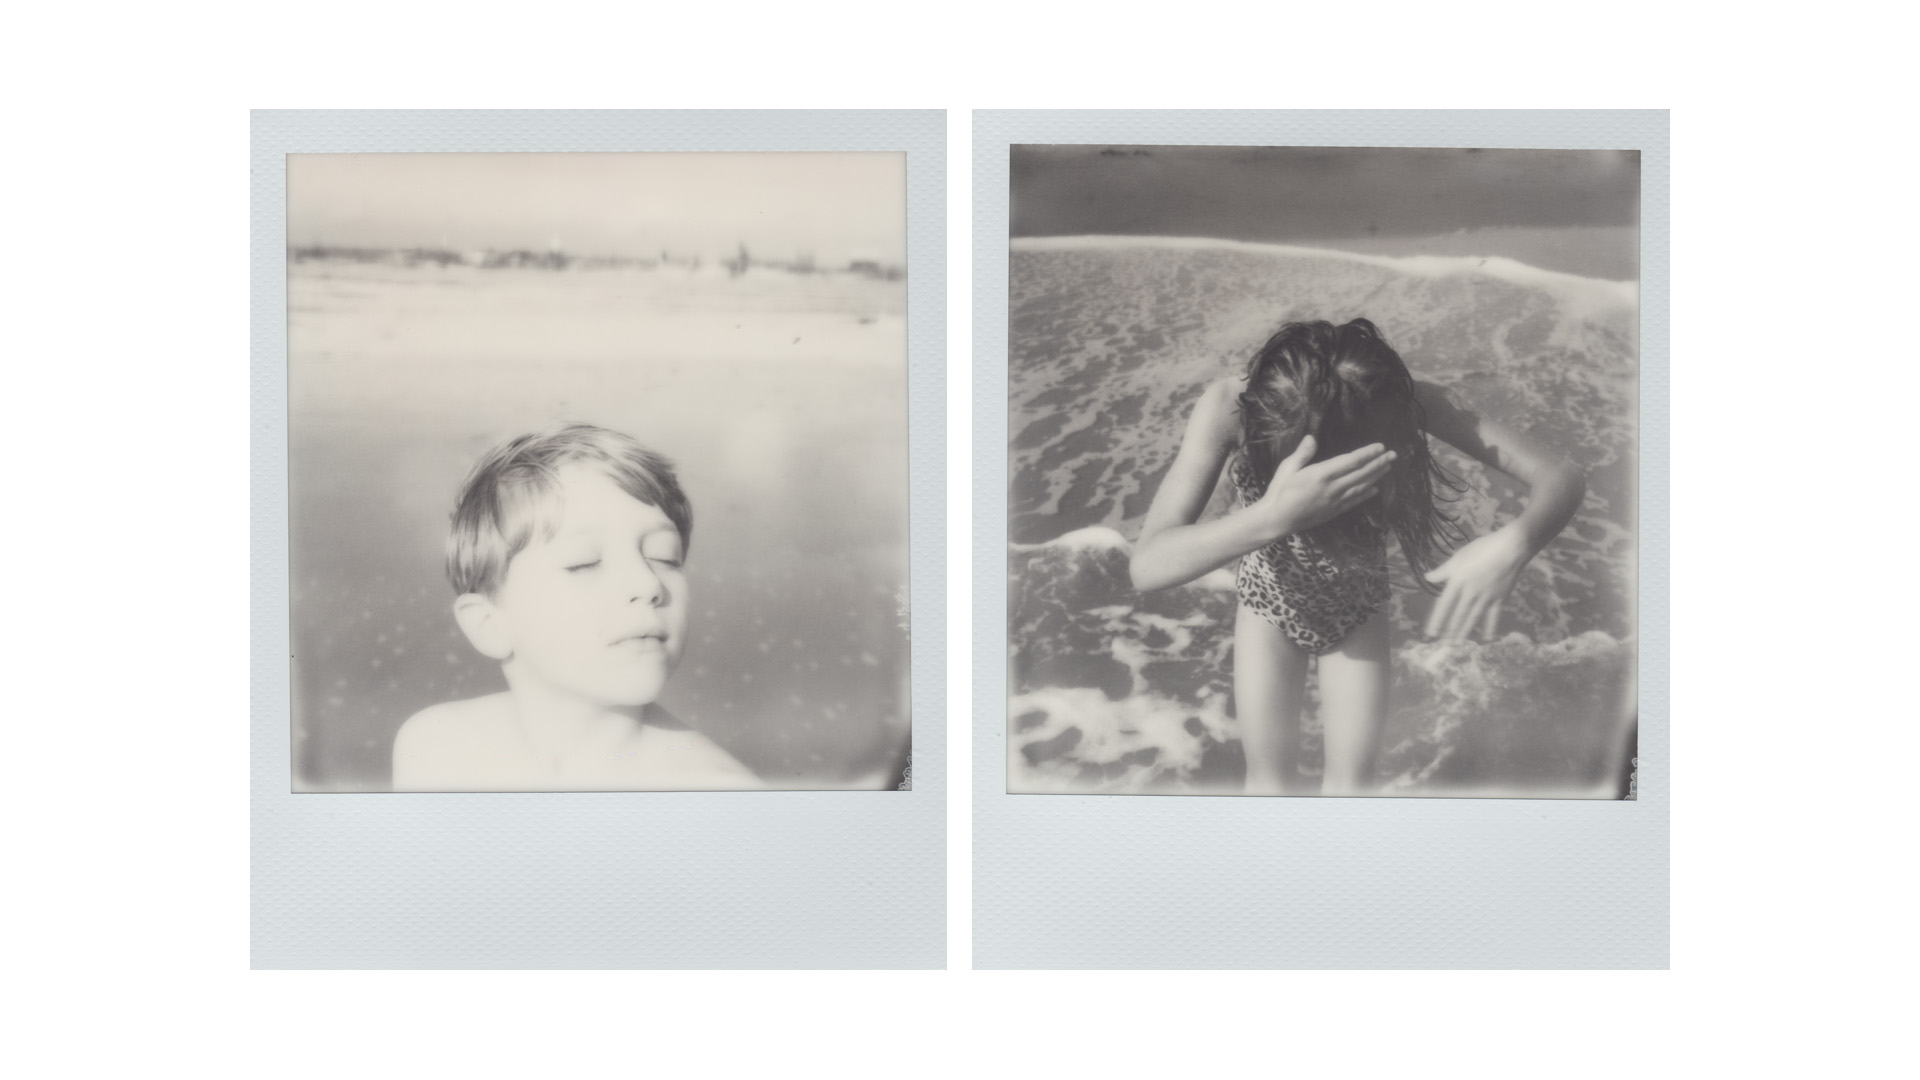 polaroid portraits of my children // (c) jocelynmathewes.com